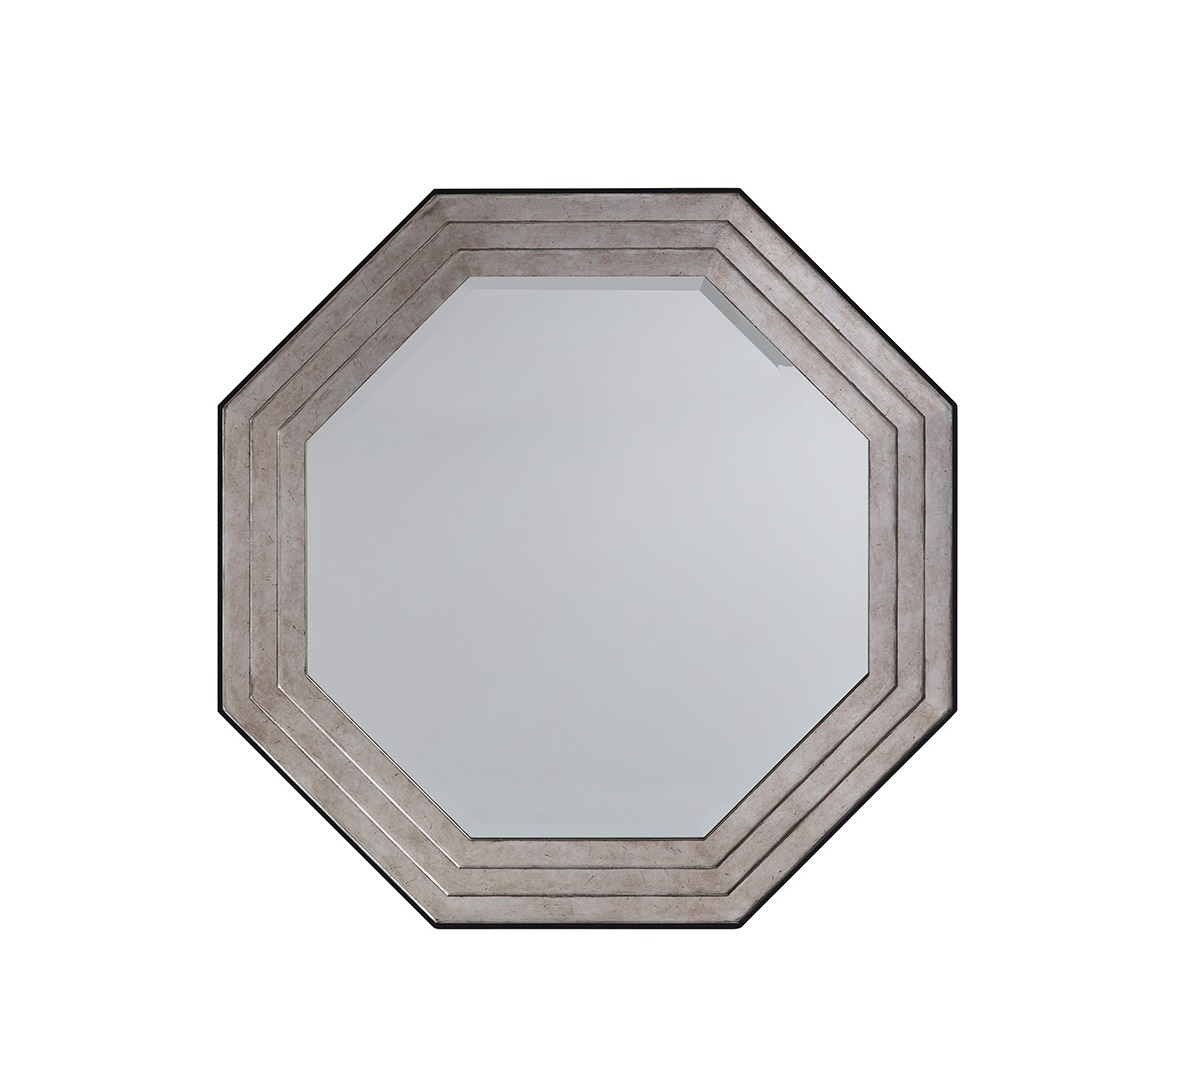 Ariana Latour Octagonal Mirror, Cheap Decorative Mirrors For Living Room